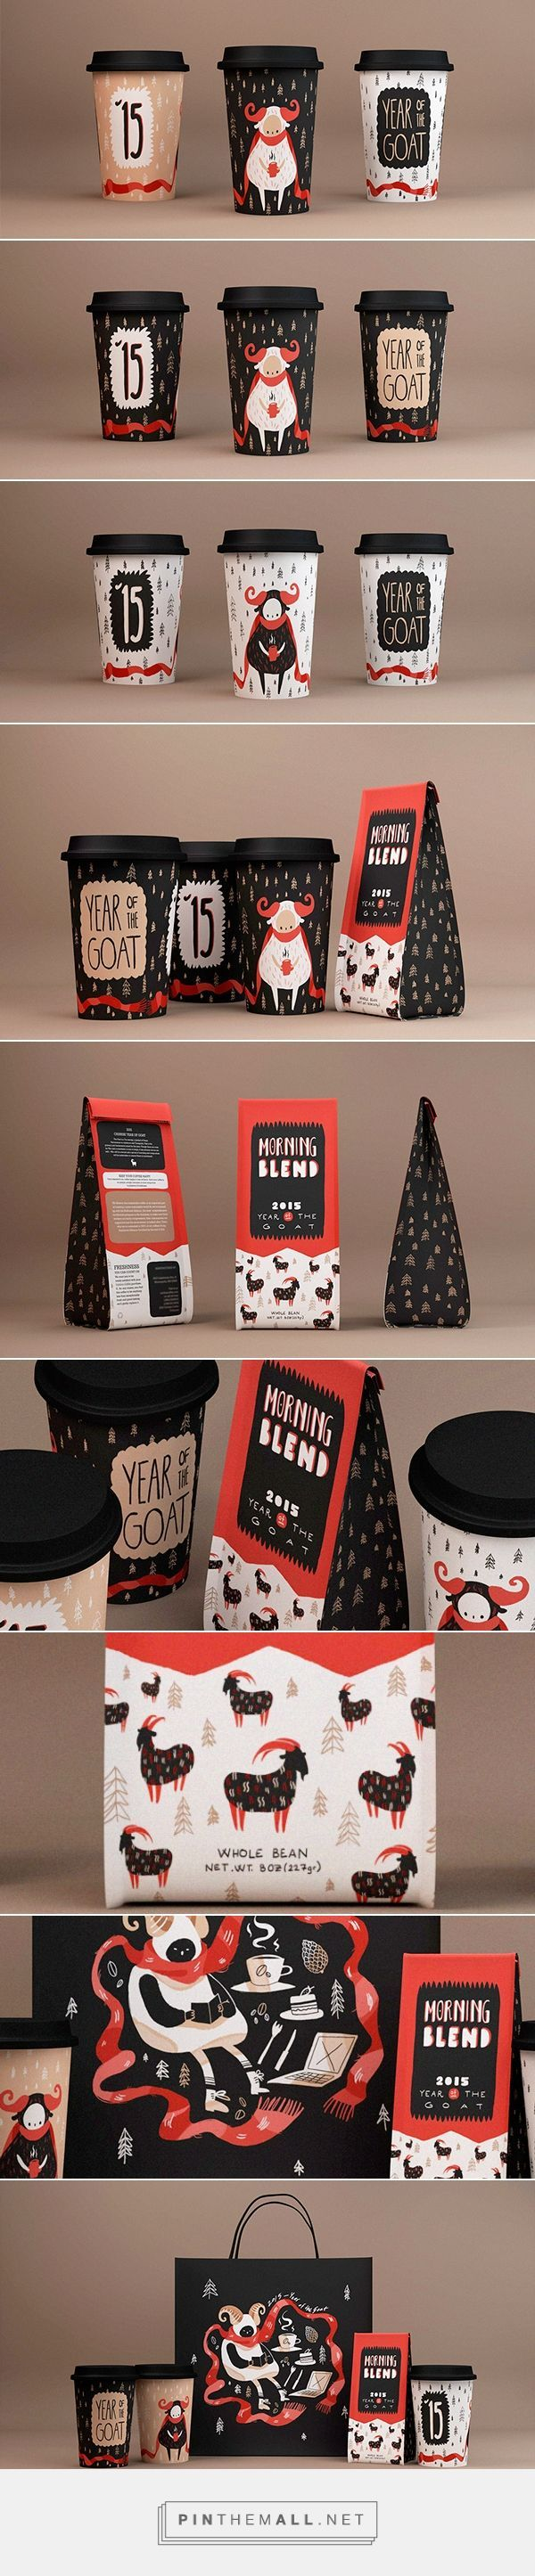 Year of the Goat coffee Packaging